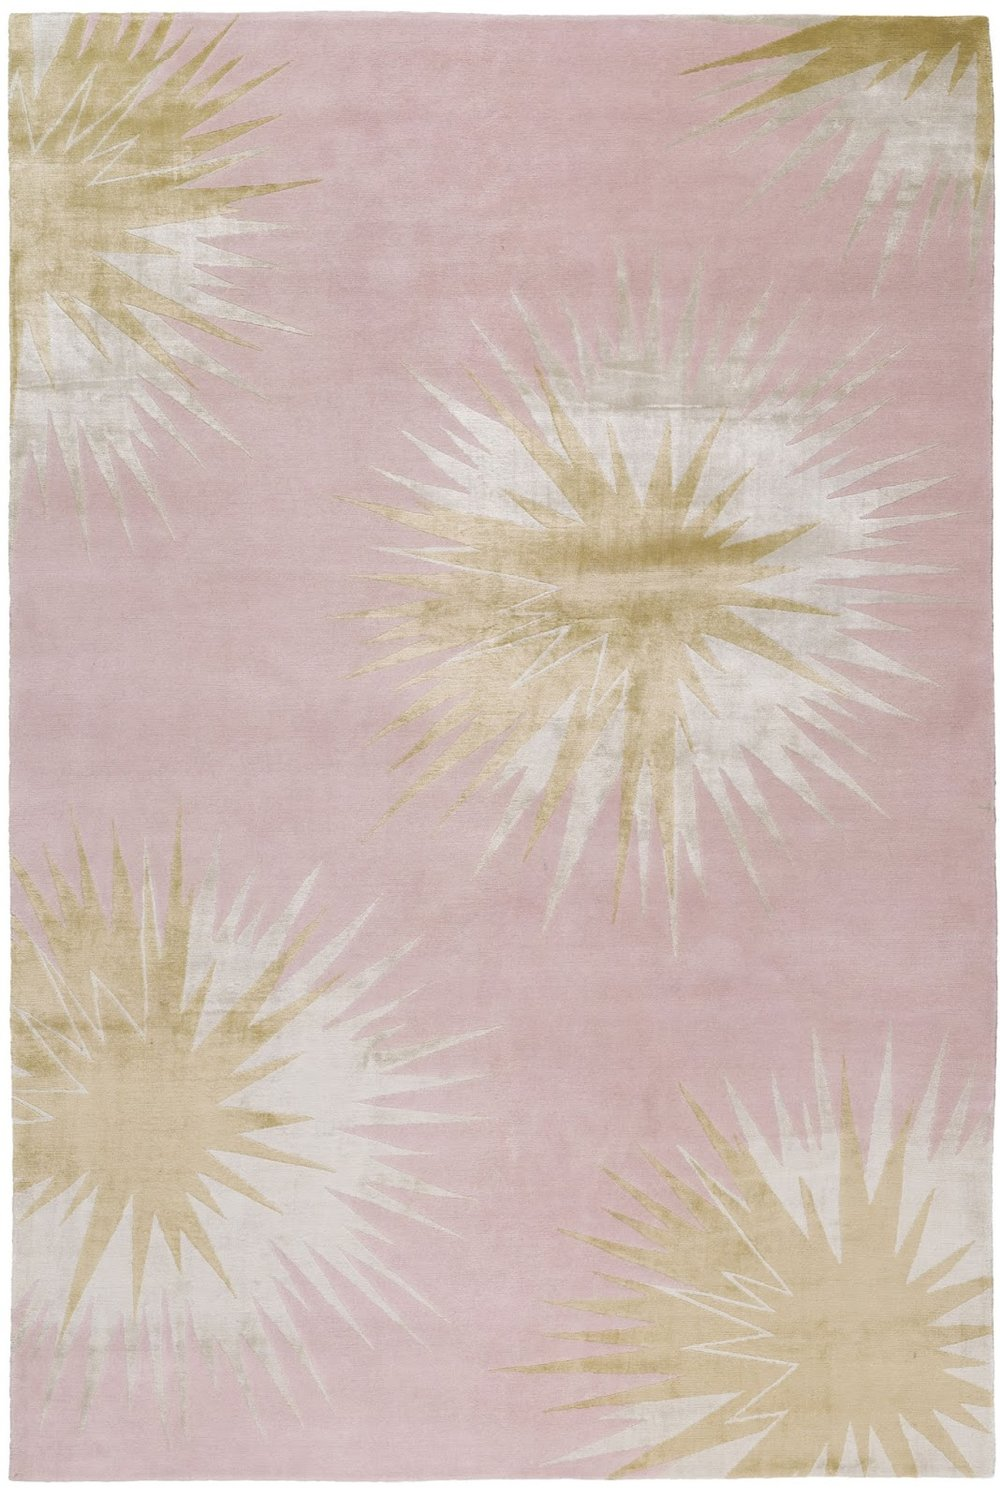 French For Pineapple Blog - Fantasy House Friday - The Rug Company